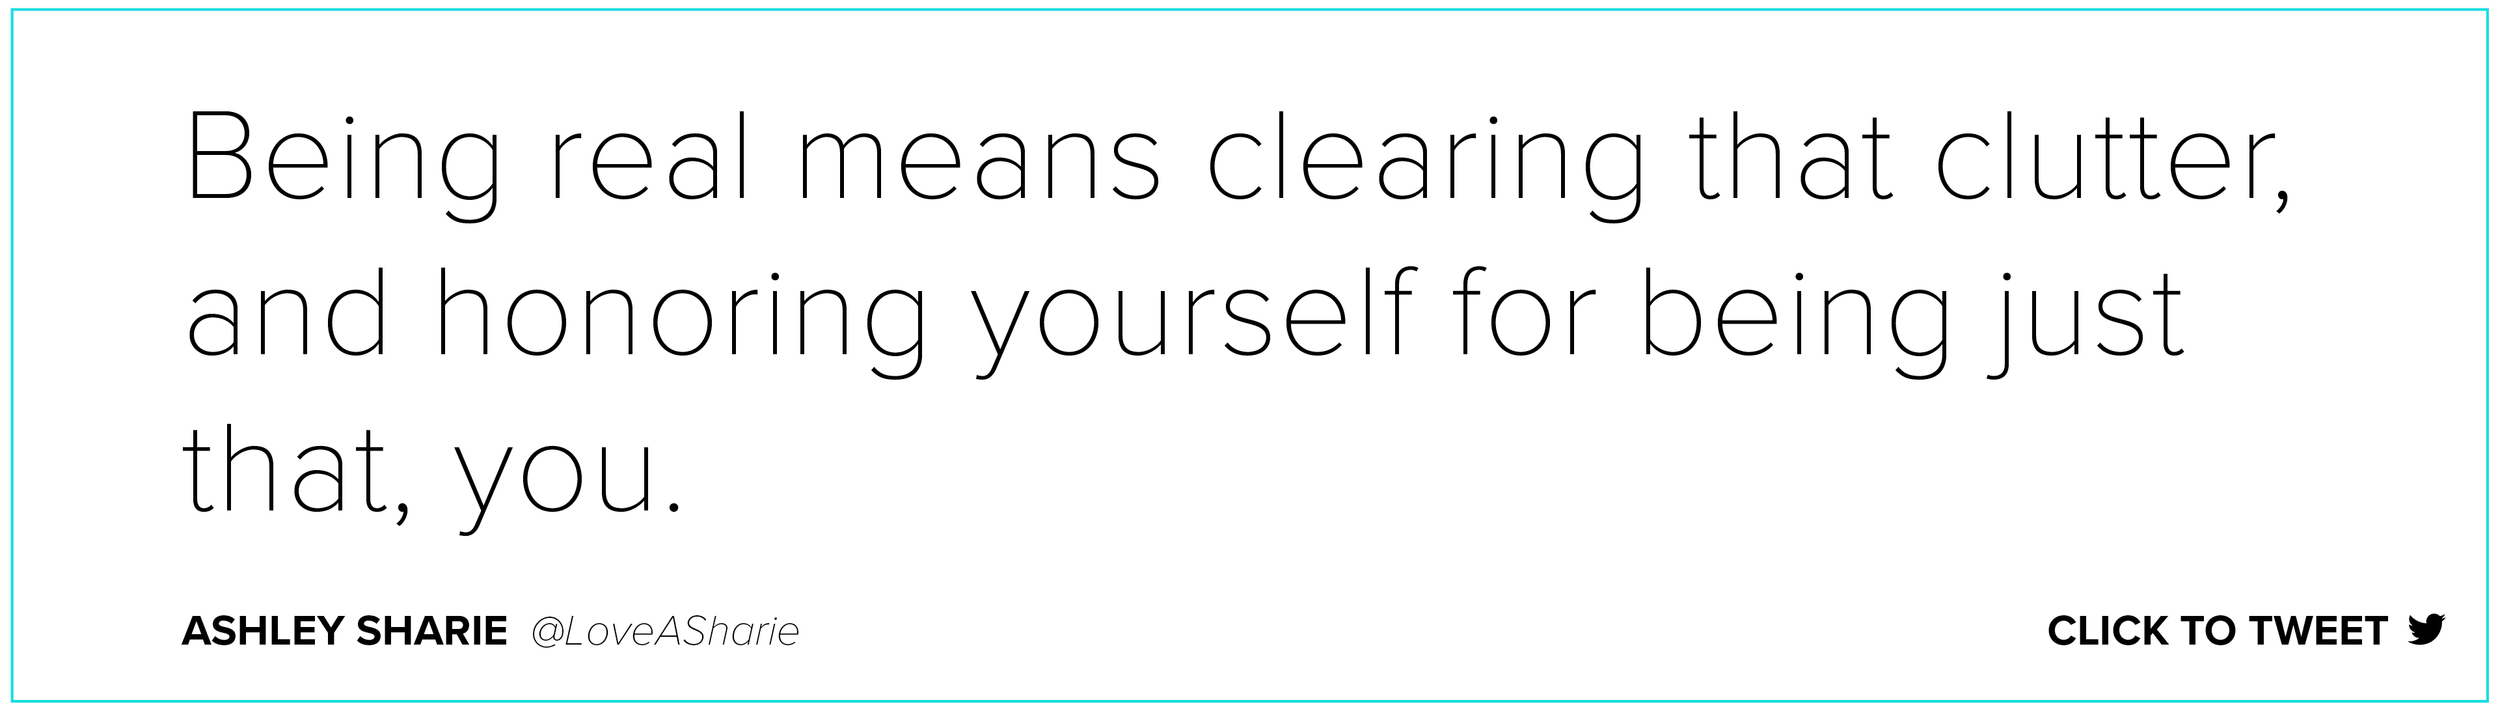 Being real means clearing that clutter, and honoring yourself for being just that, you. Ashley Sharie   @LoveASharie   @2aspirebiz